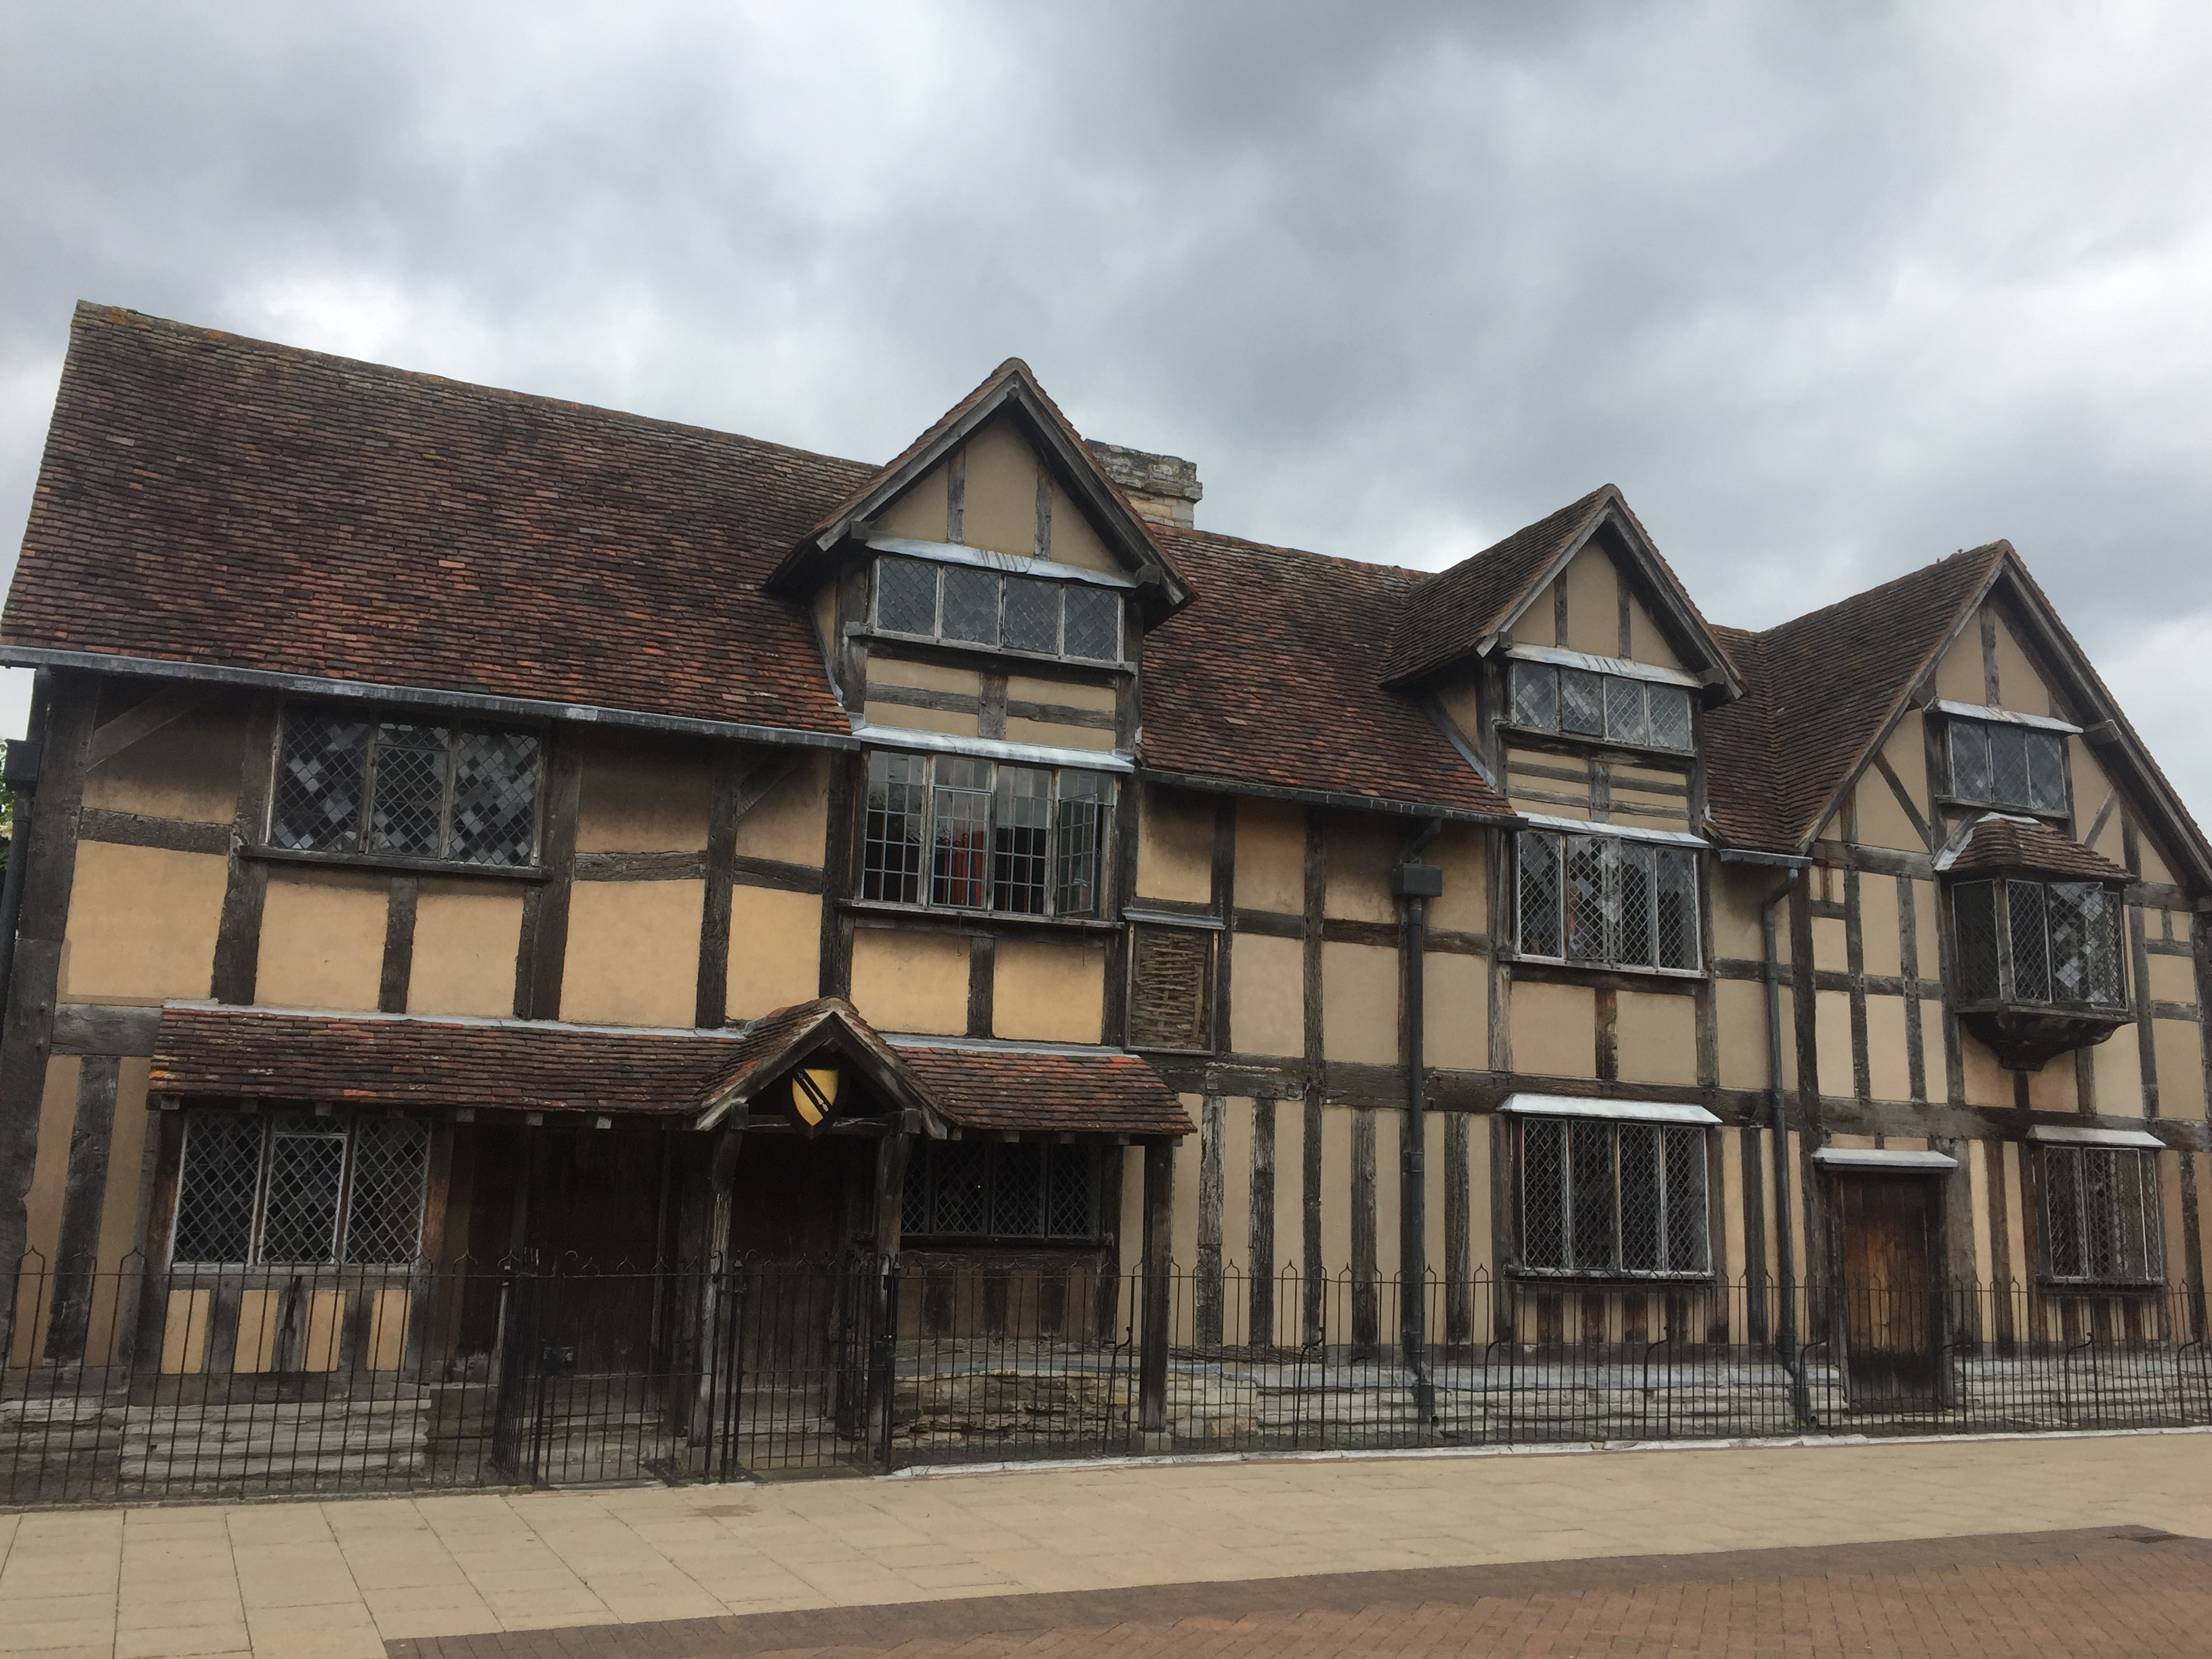 The home of Shakespeare in the centre of Stratford-upon-Avon